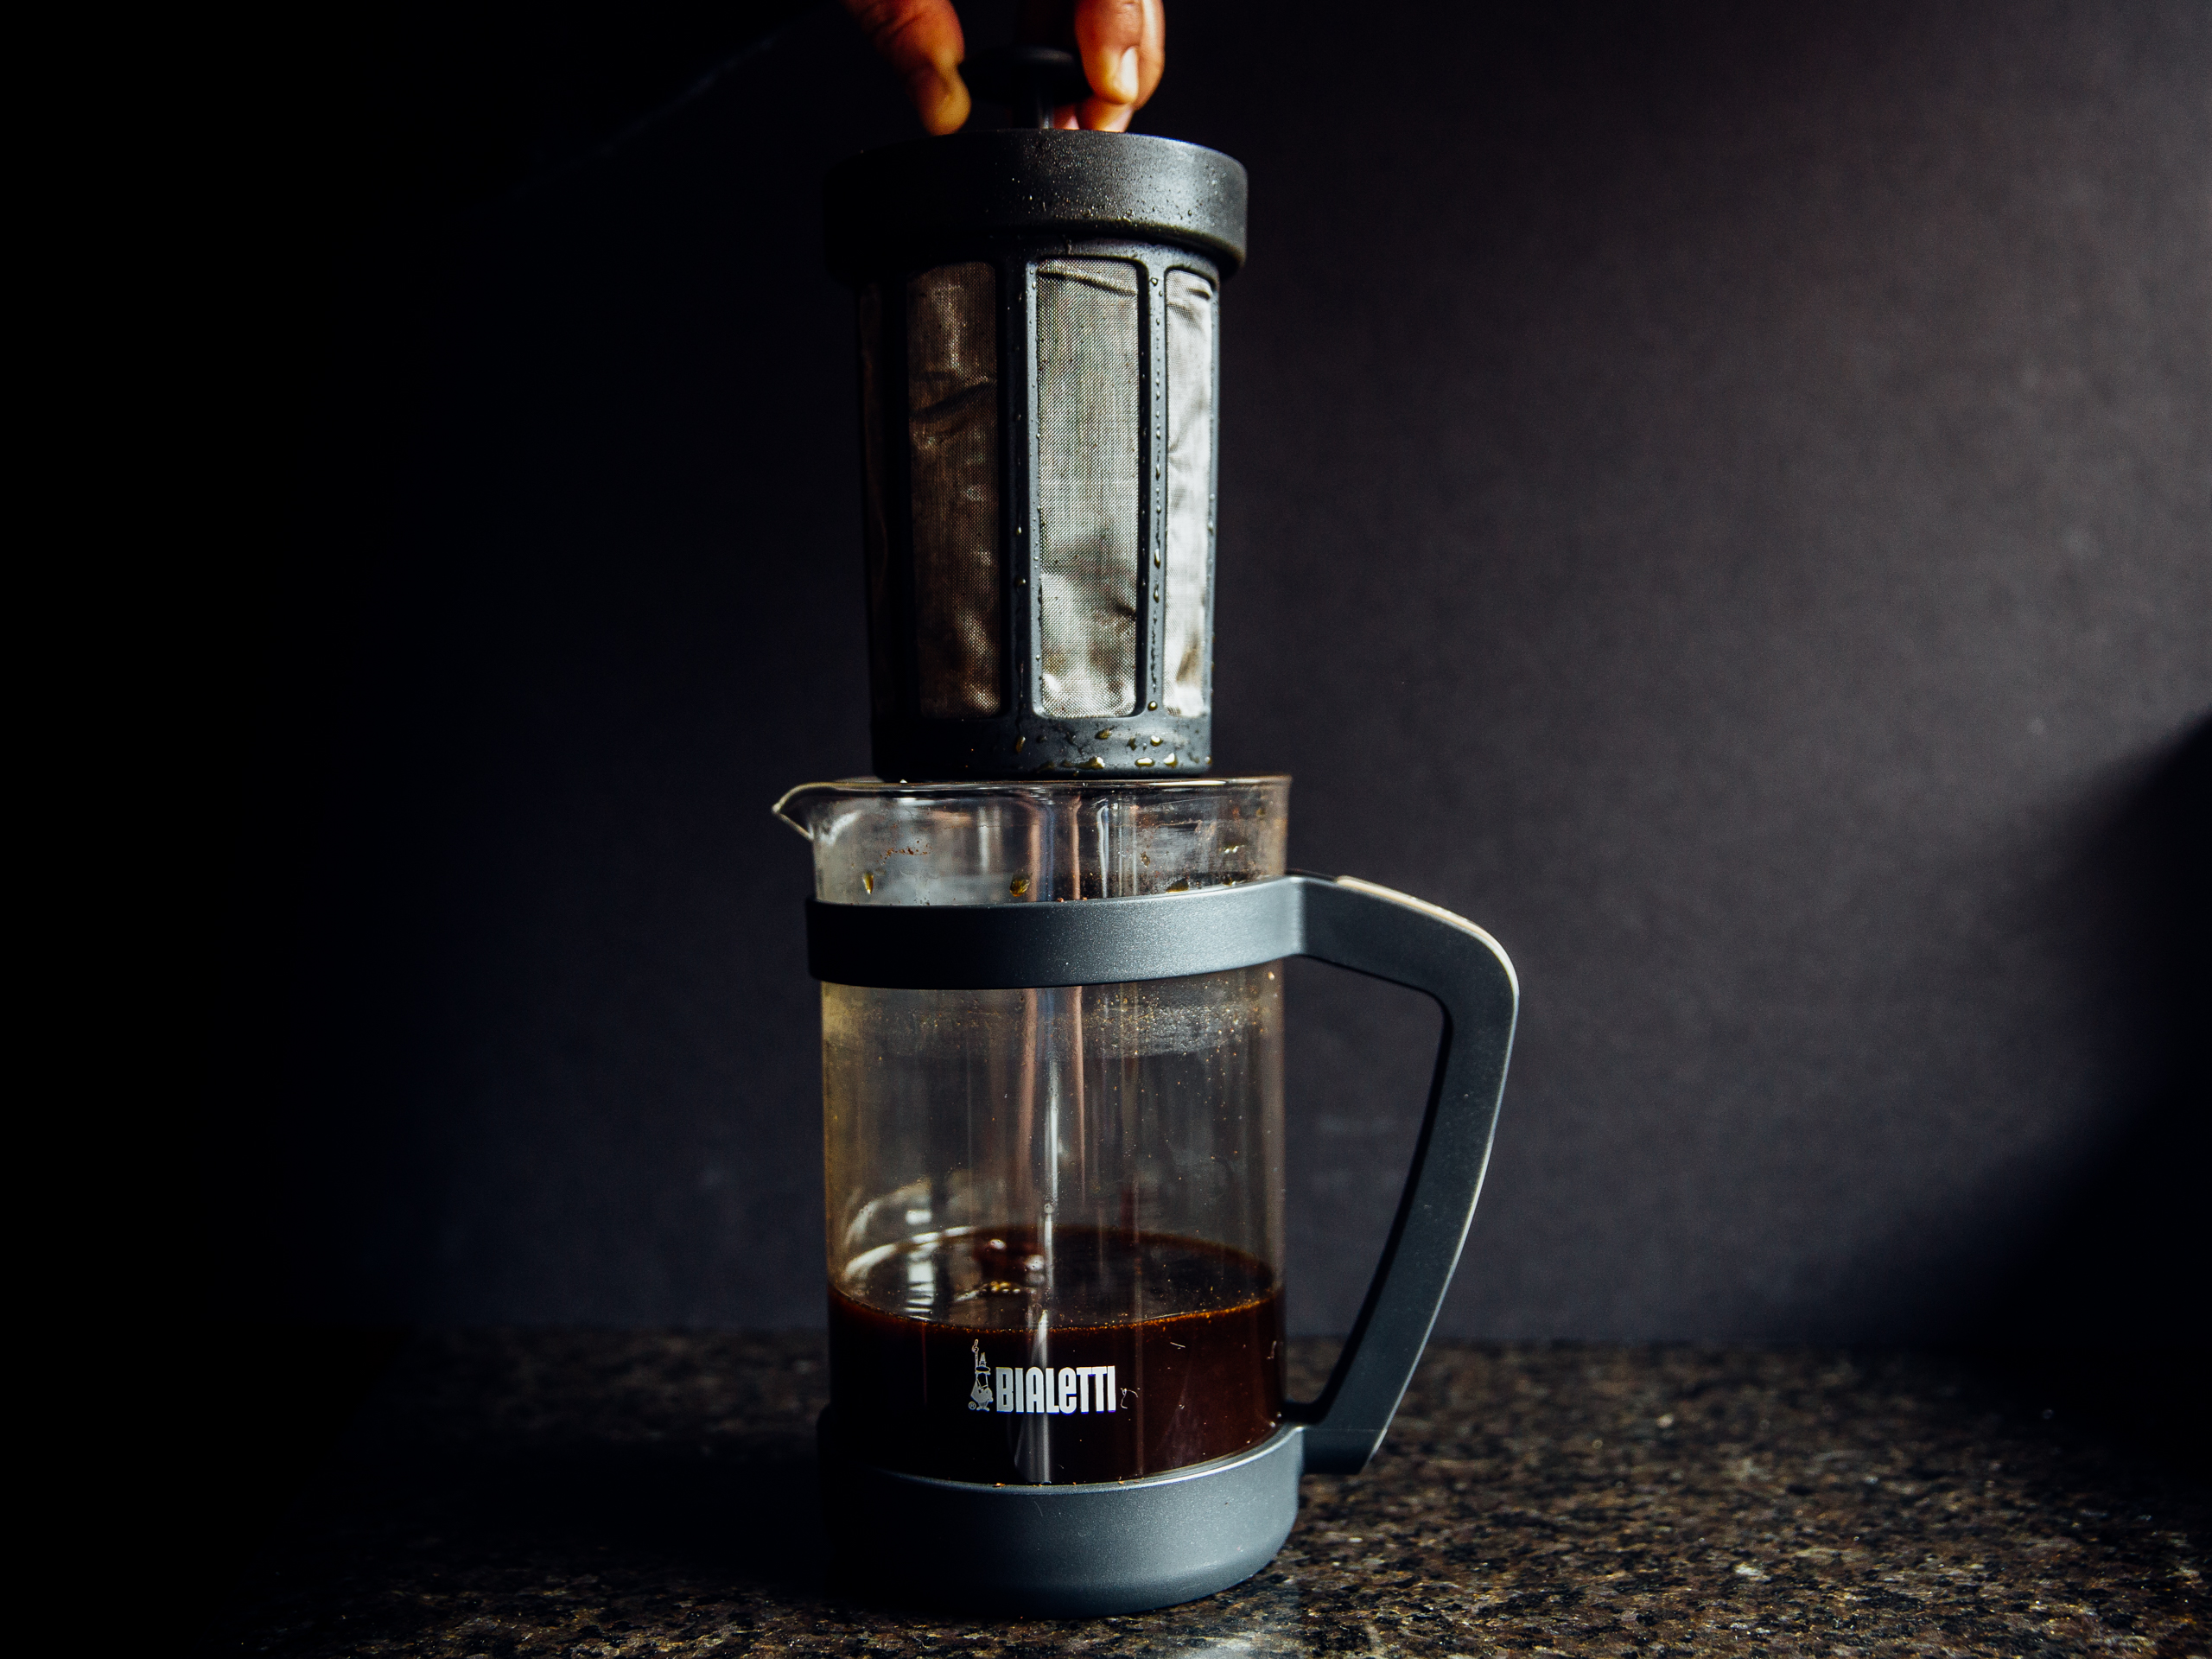 bialetti-cold-brew-product-photos-5.jpg